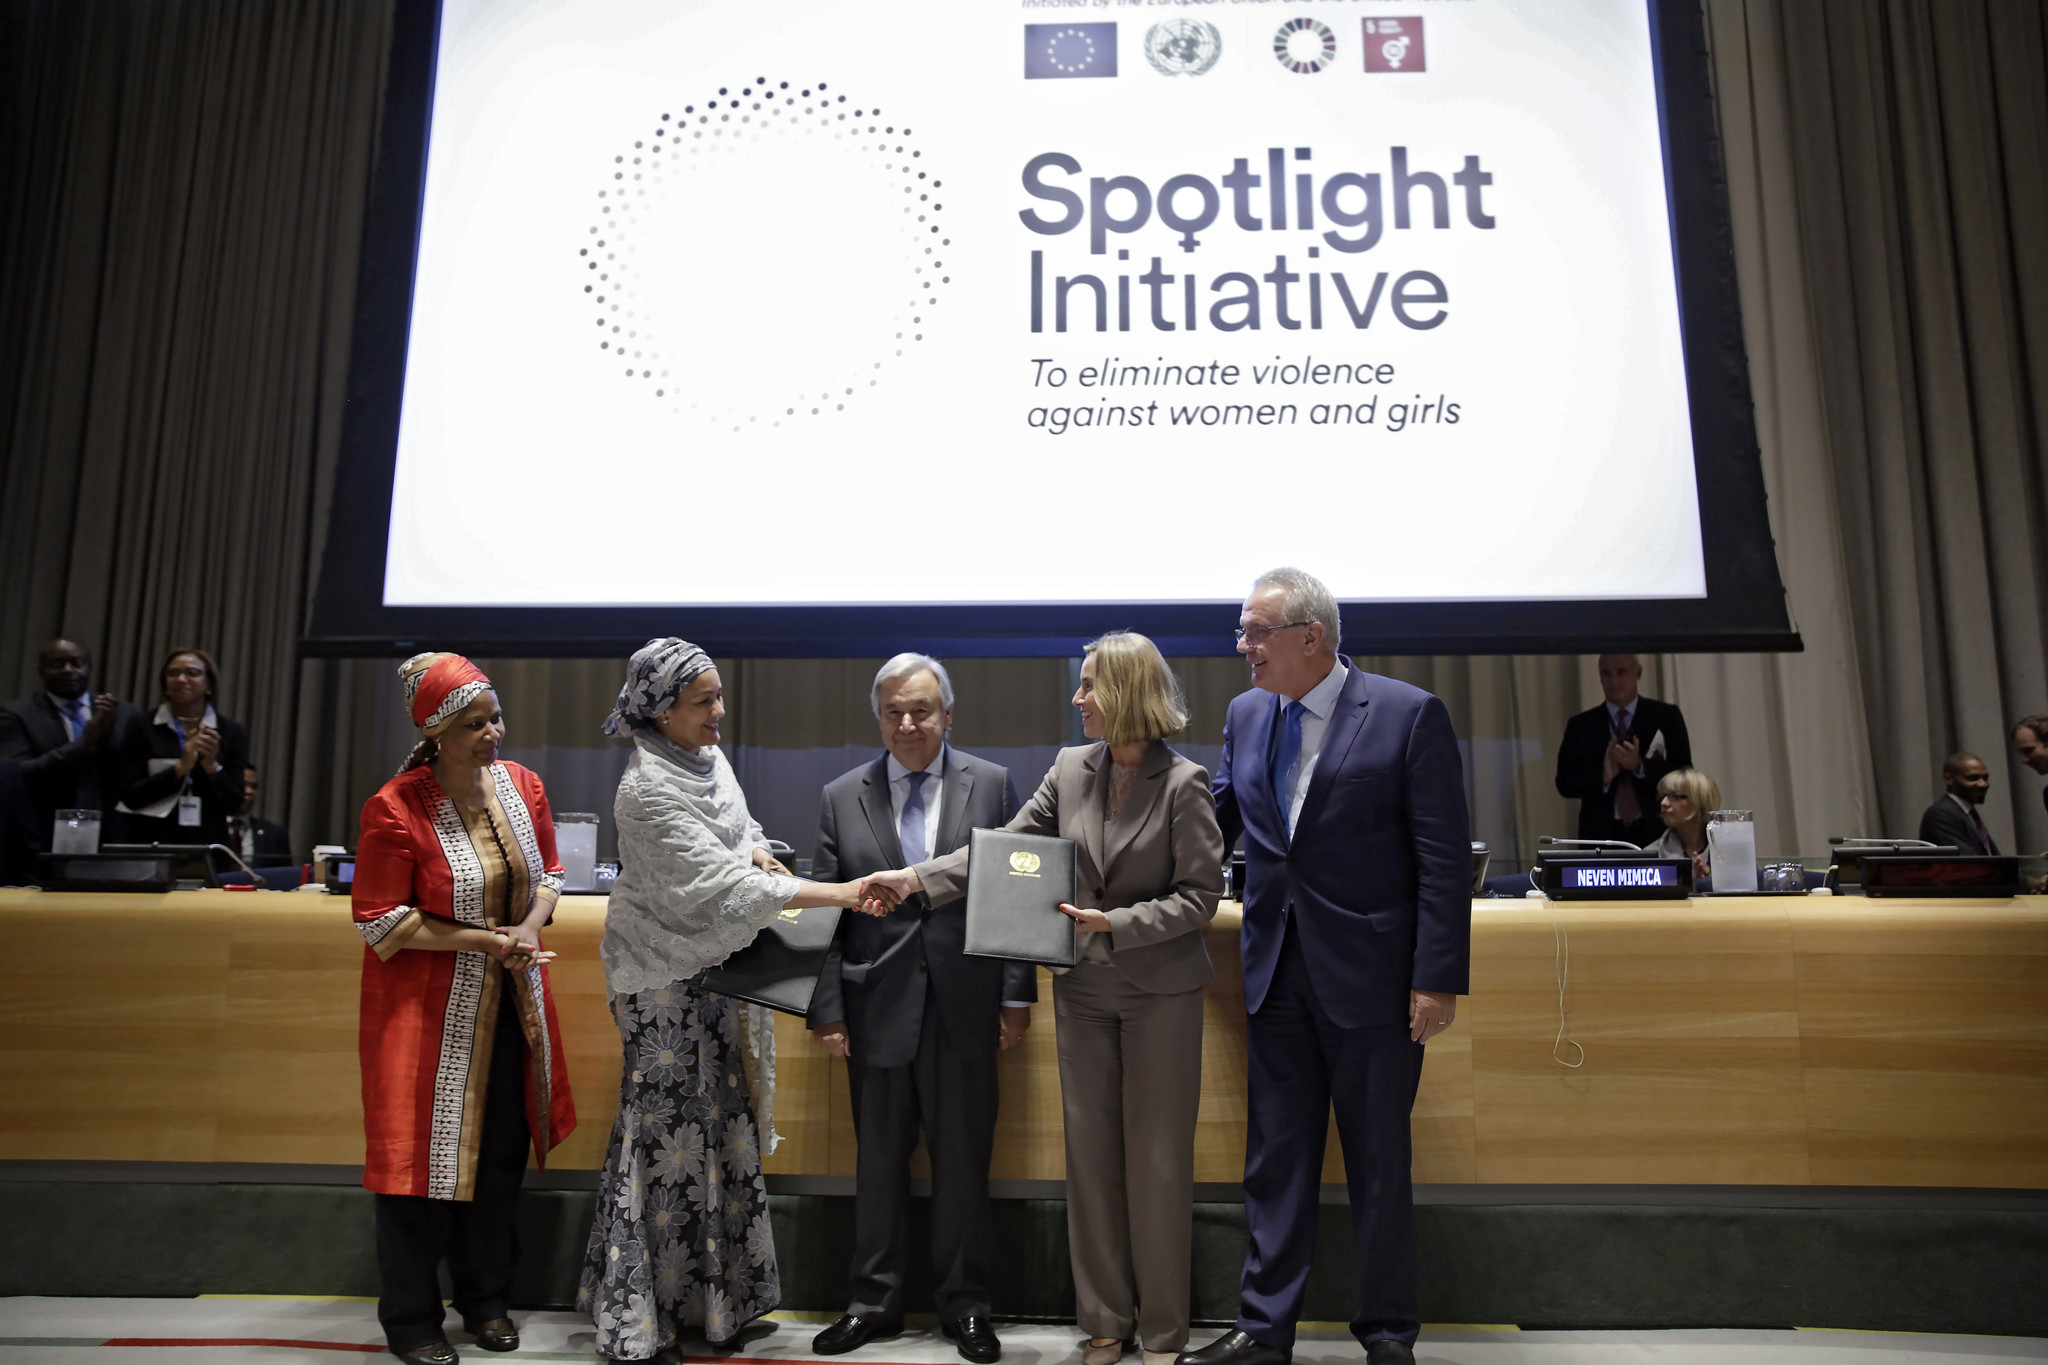 GA72 - EU and UN launch Spotlight Initiative to eliminate violence against women and girls_flickr